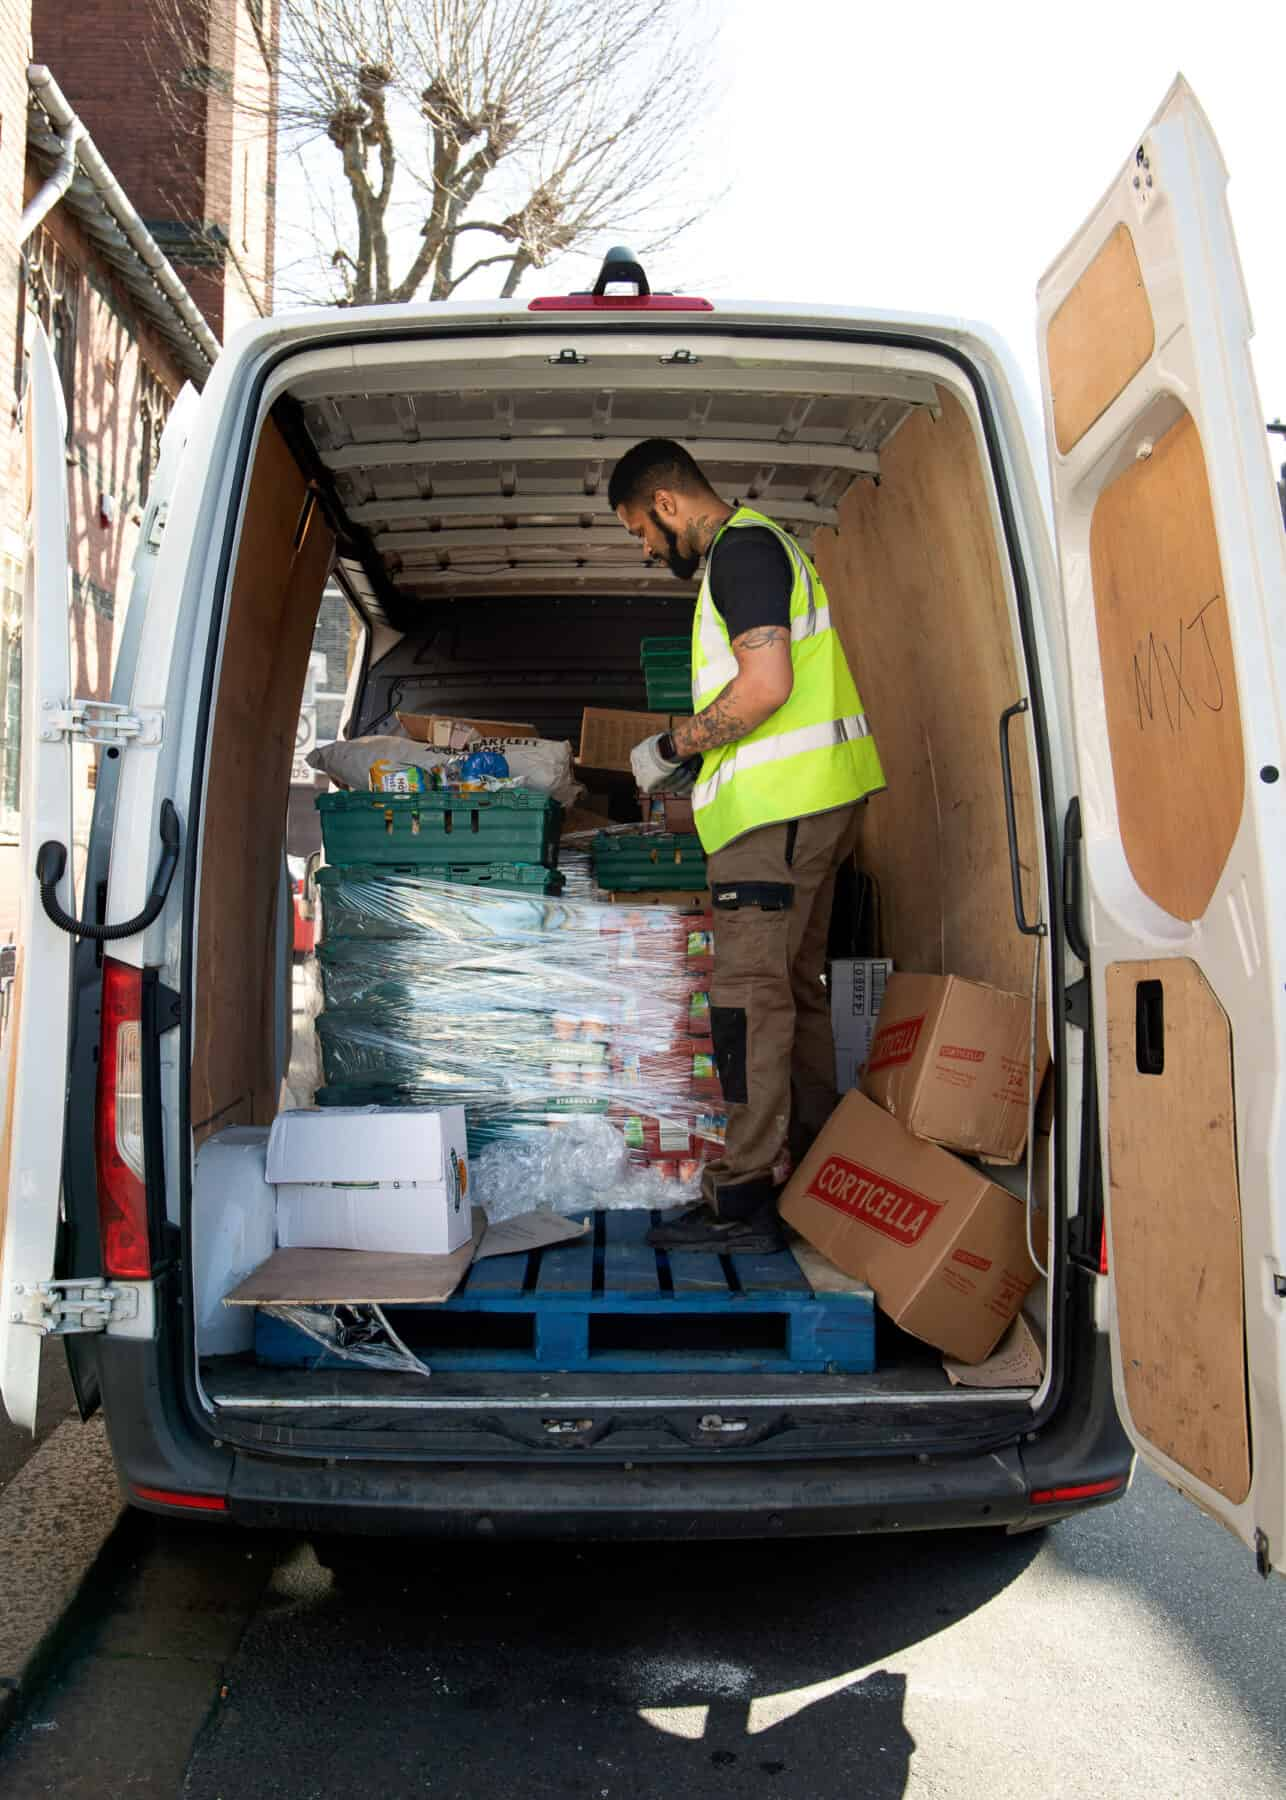 One of our donors kindly delivering food for our food bank.